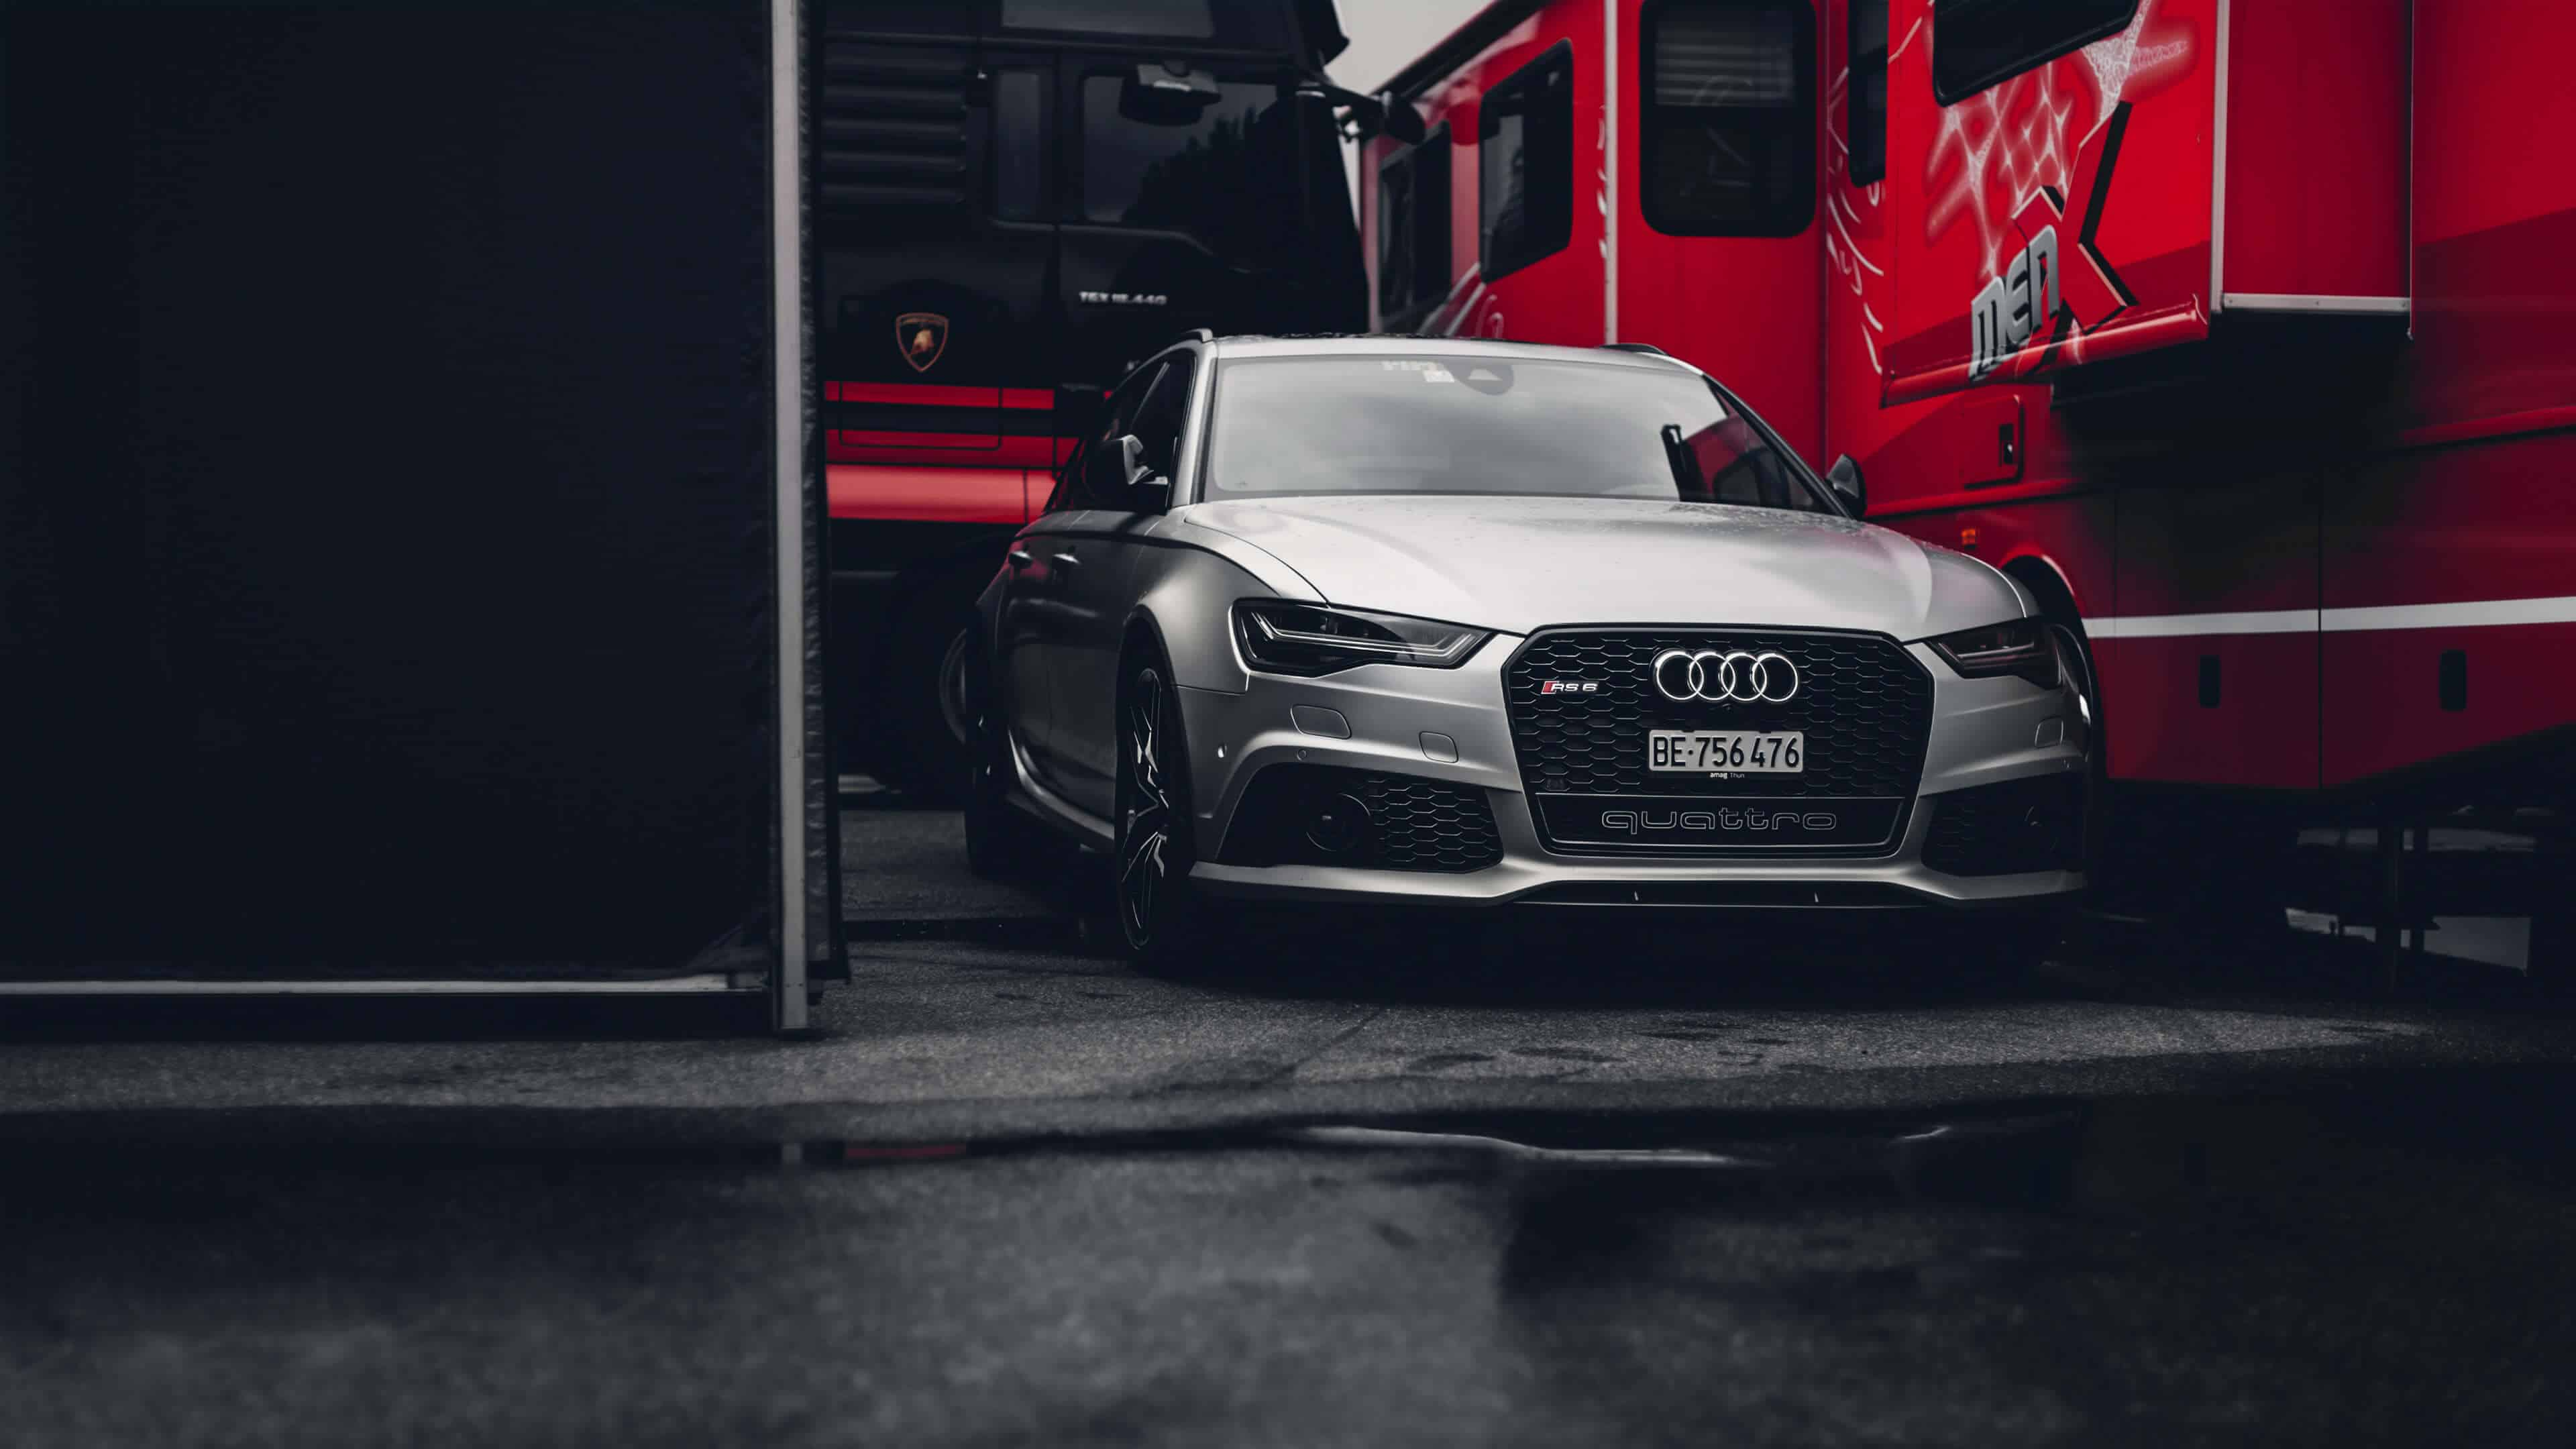 Audi Rs6 Quattro Uhd 4k Wallpaper Pixelz